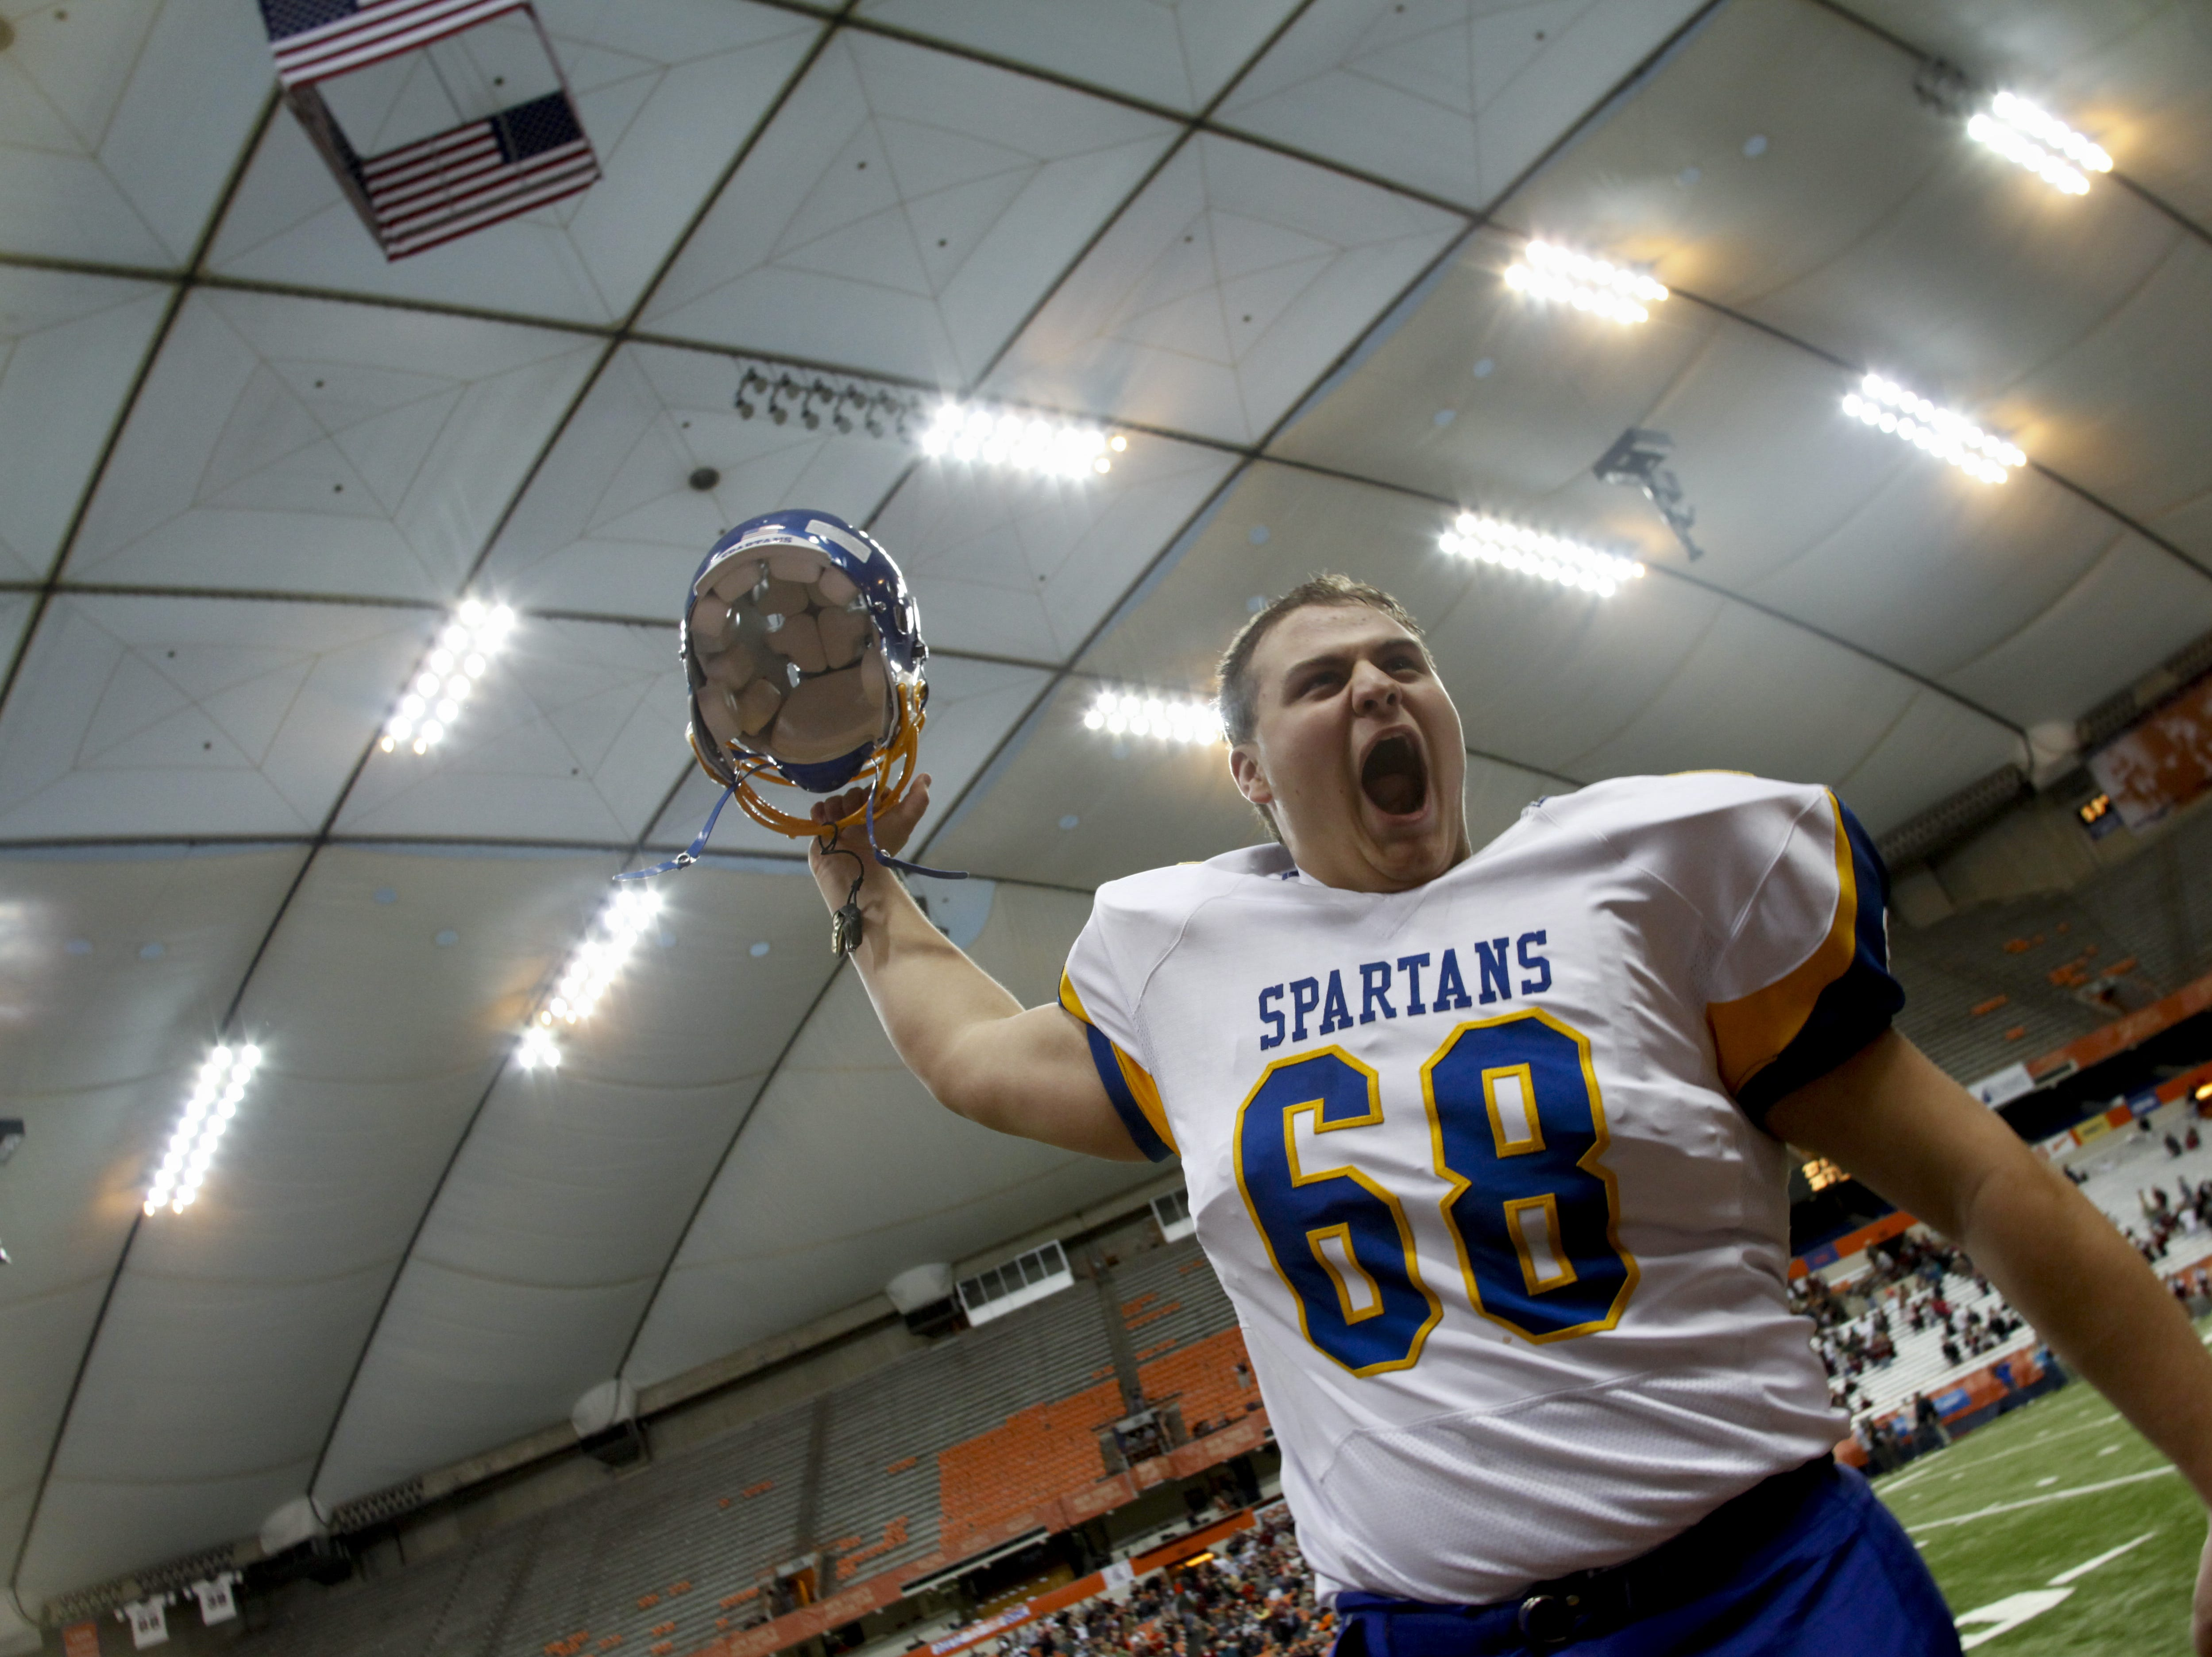 Maine Endwell's Heath Ferris throws his helmet up in celebration of his team's victory over Burnt Hills-Ballston Lake at the Class A New York State High School Football Championship held at Syracuse's Carrier Dome.